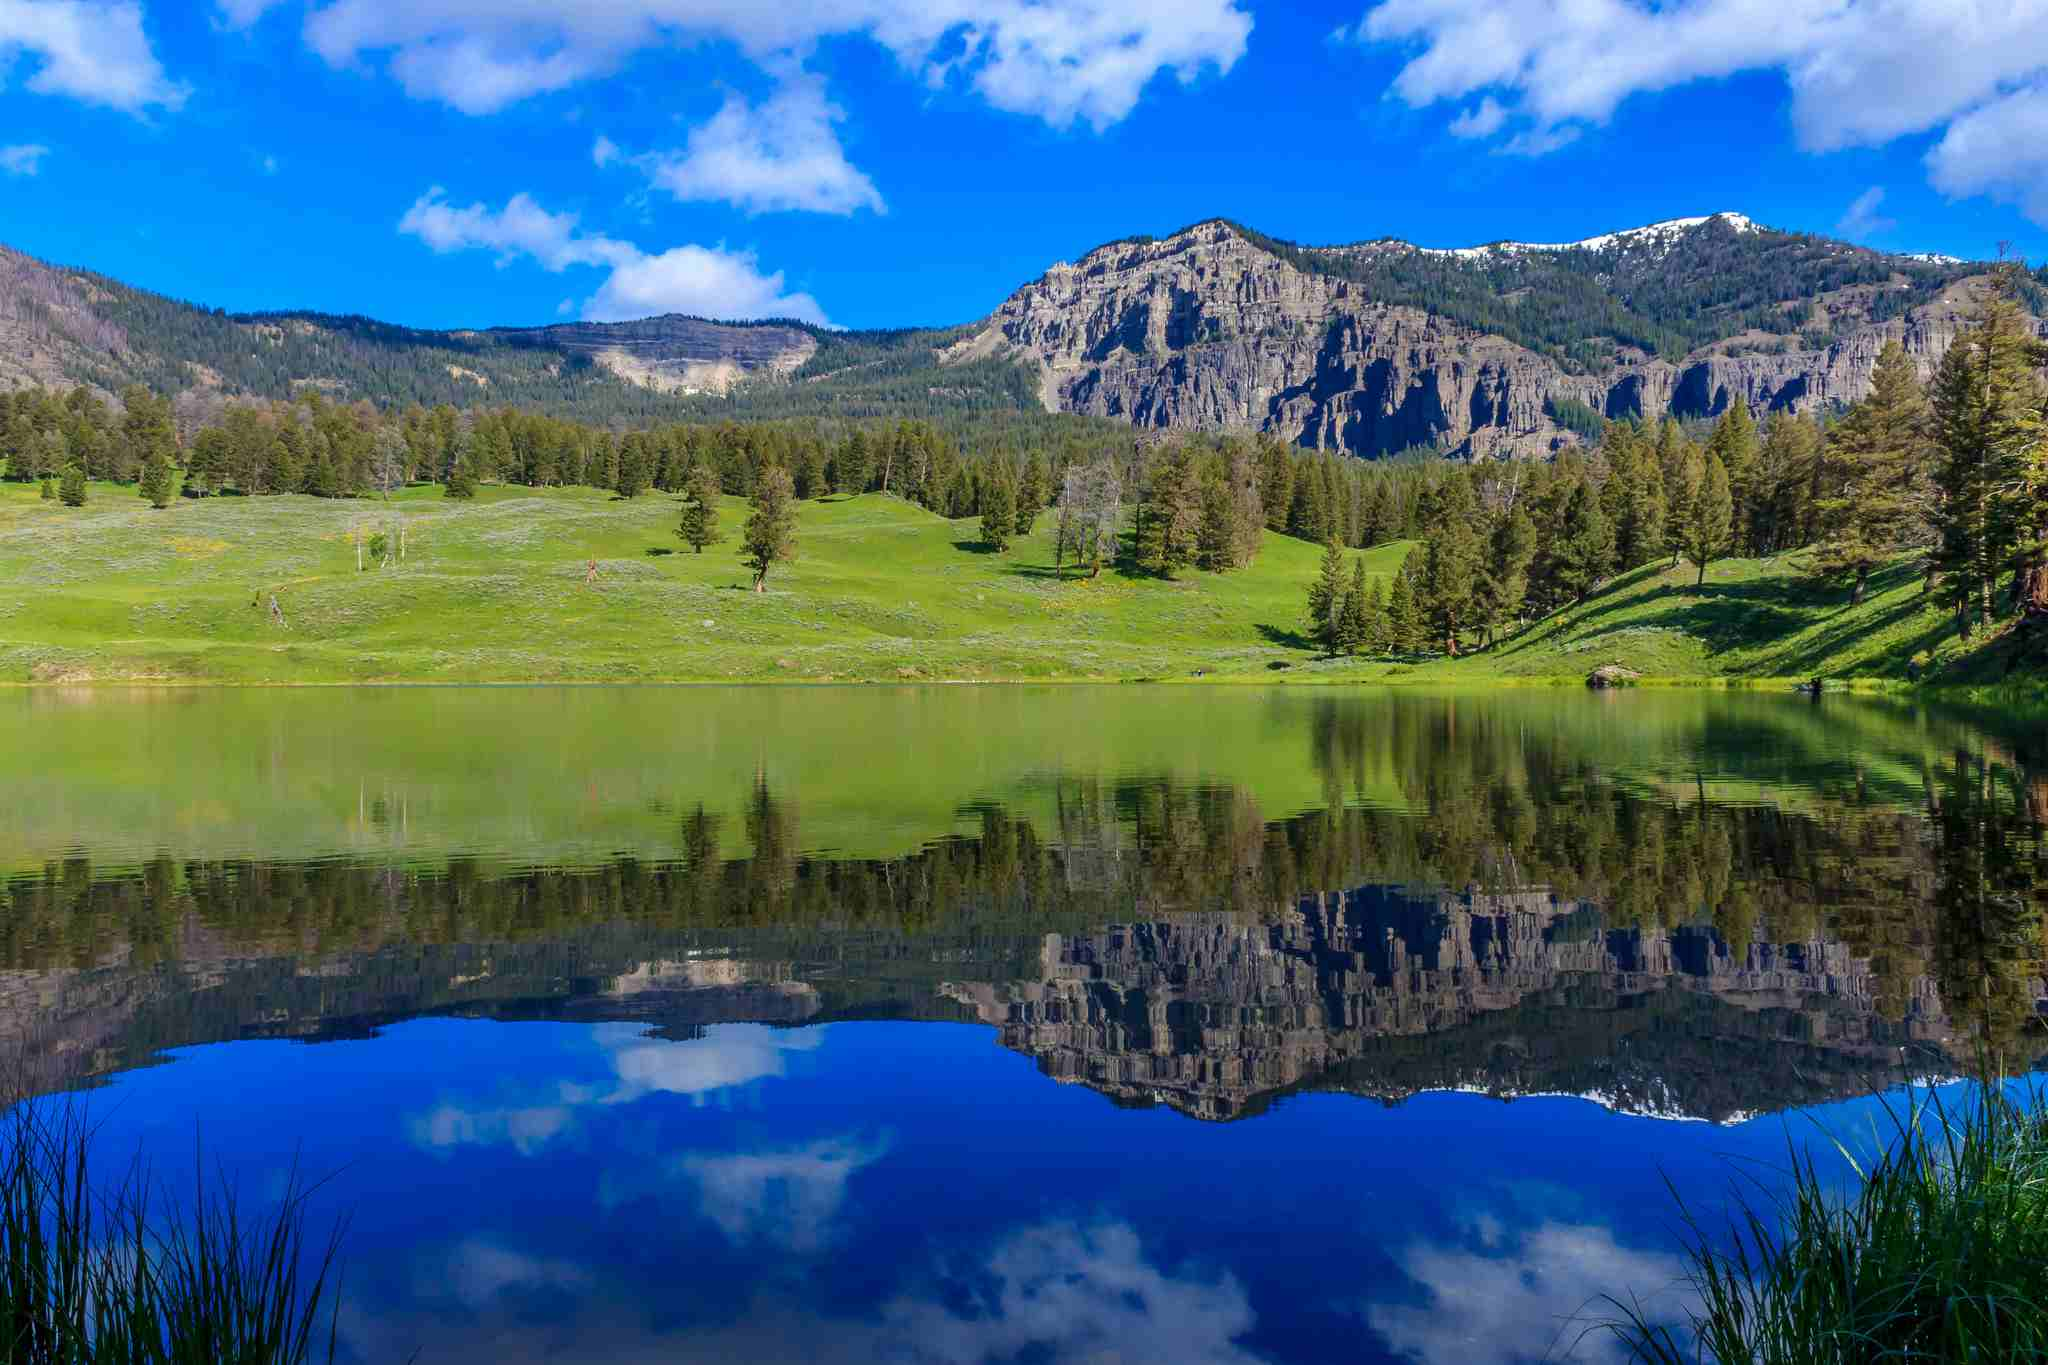 Trout Lake in Yellowstone National Park